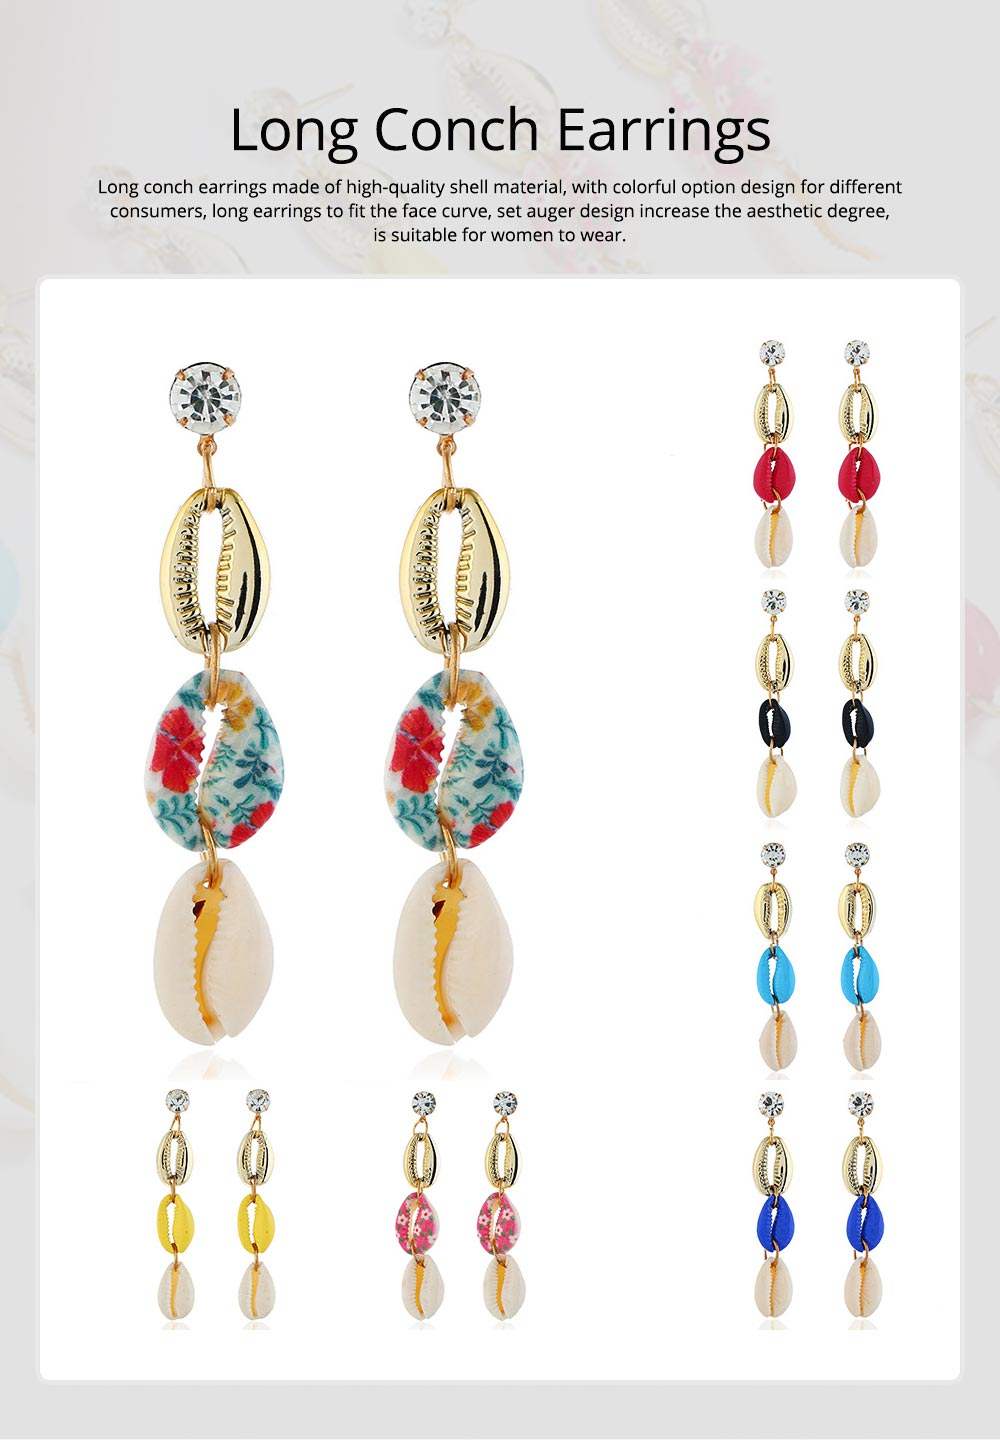 Long Conch Earrings for Women Colorful Option Set Auger Design Western Style Multilayer Colored Shell Stud Earring 0